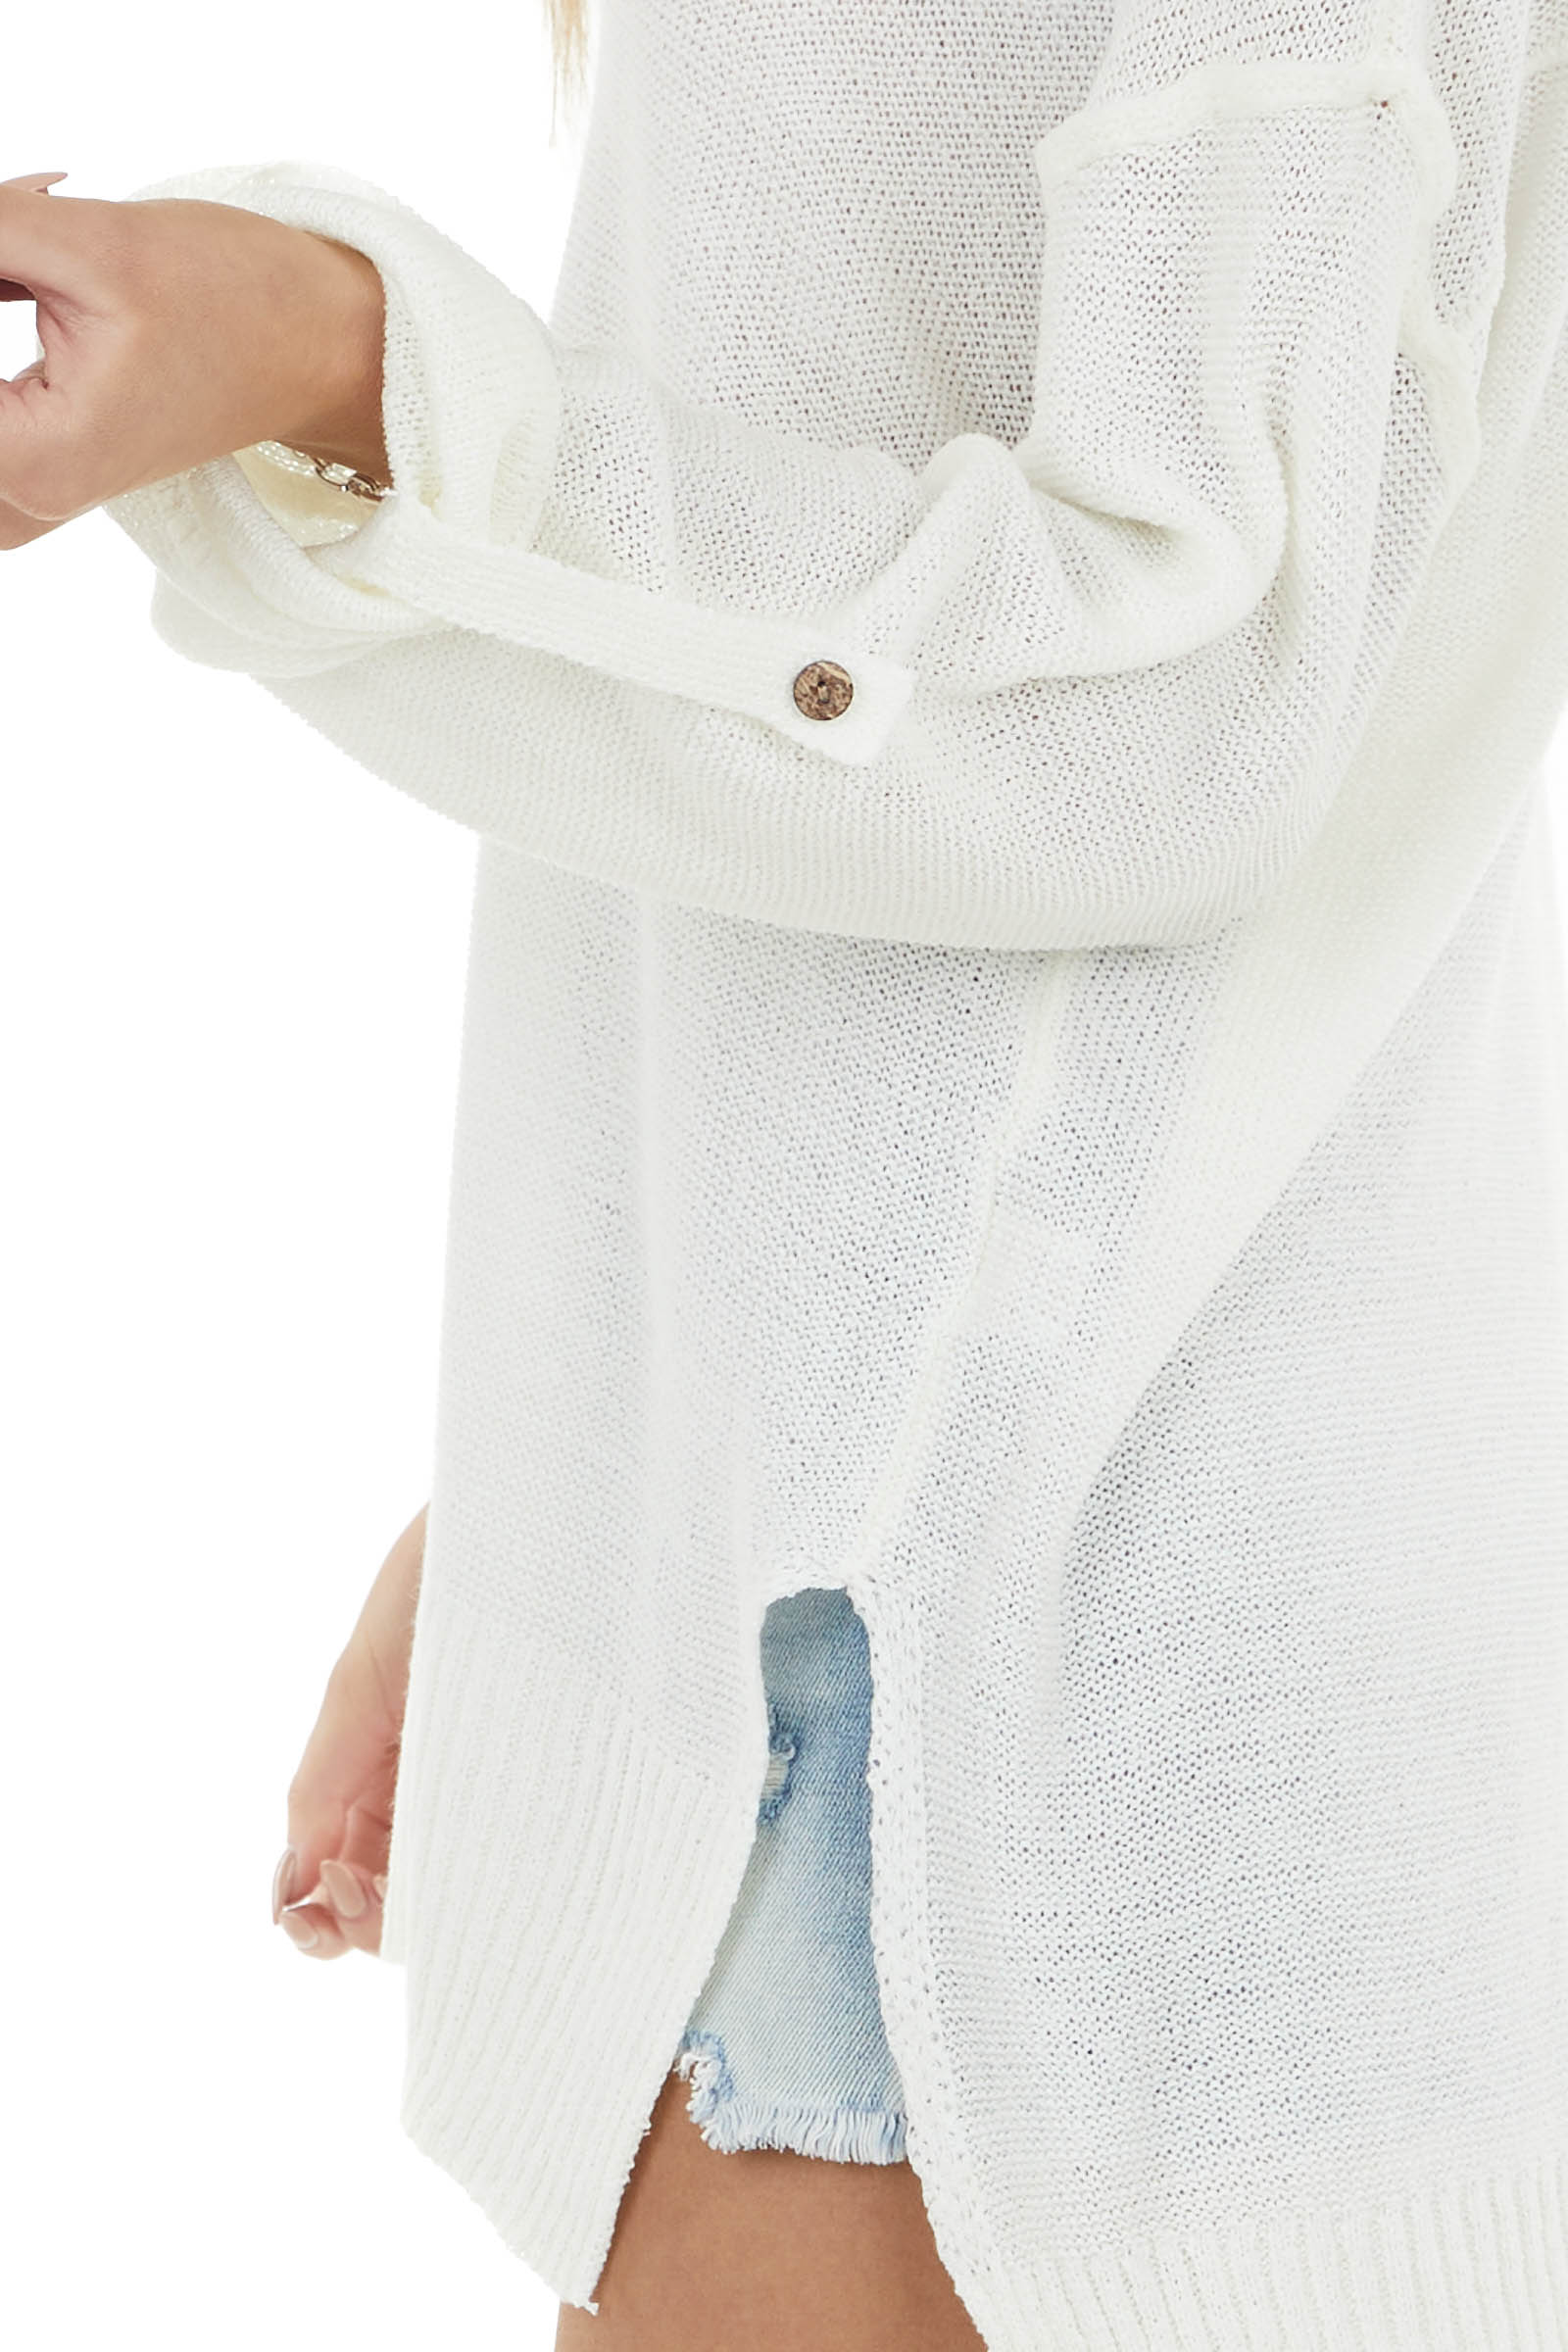 Off White V Neck Knit Sweater with Wood Button Details